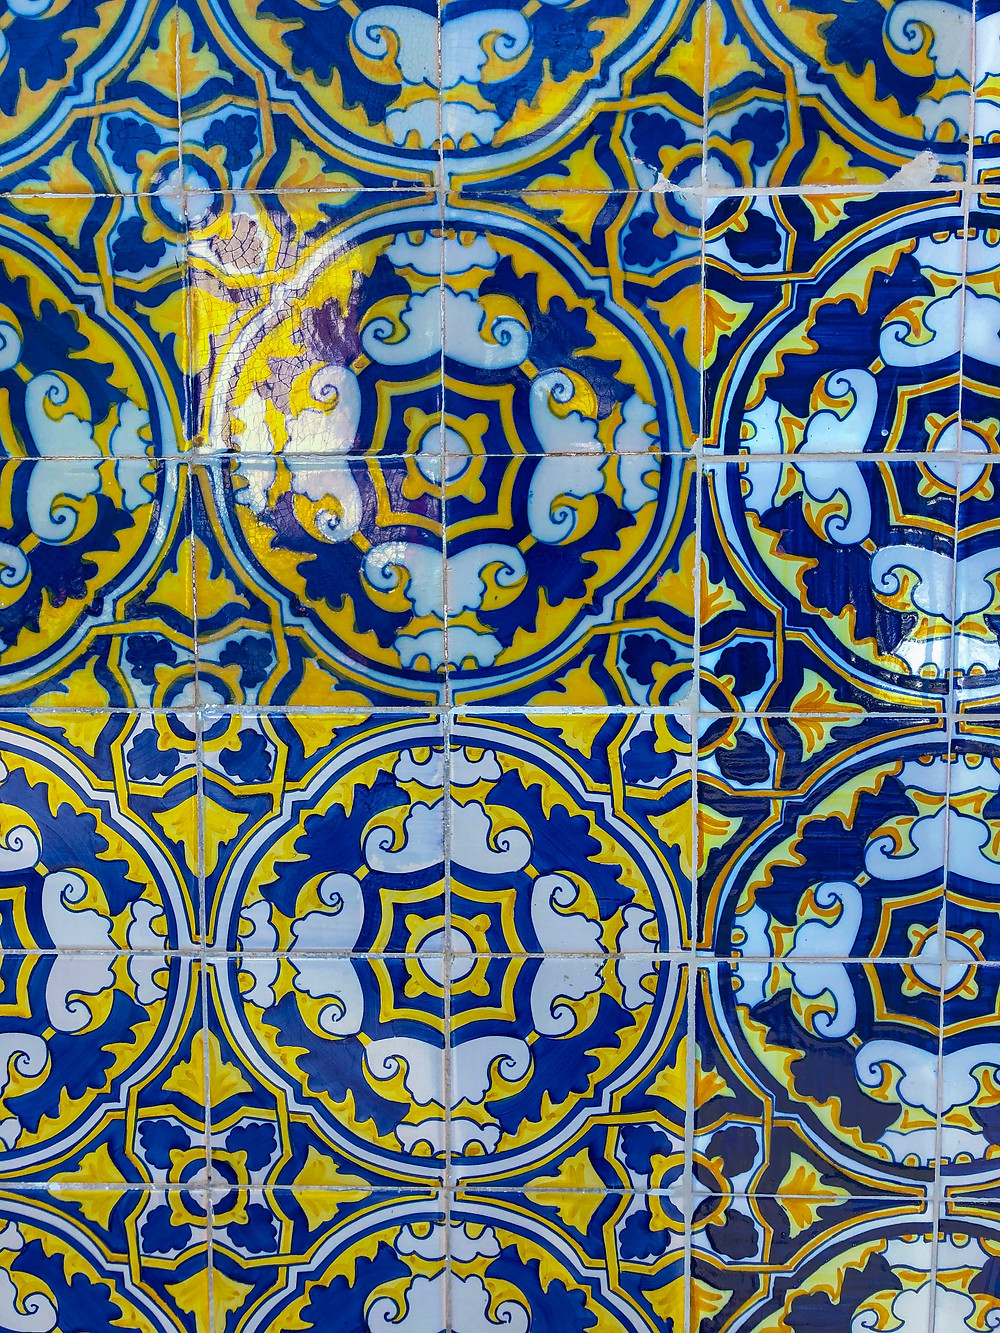 photograph of girl fashion travel blogger in fun boating outfit exploring downtown city center of Old Town Cascais Portugal, admiring the handpainted Portuguese tiles.